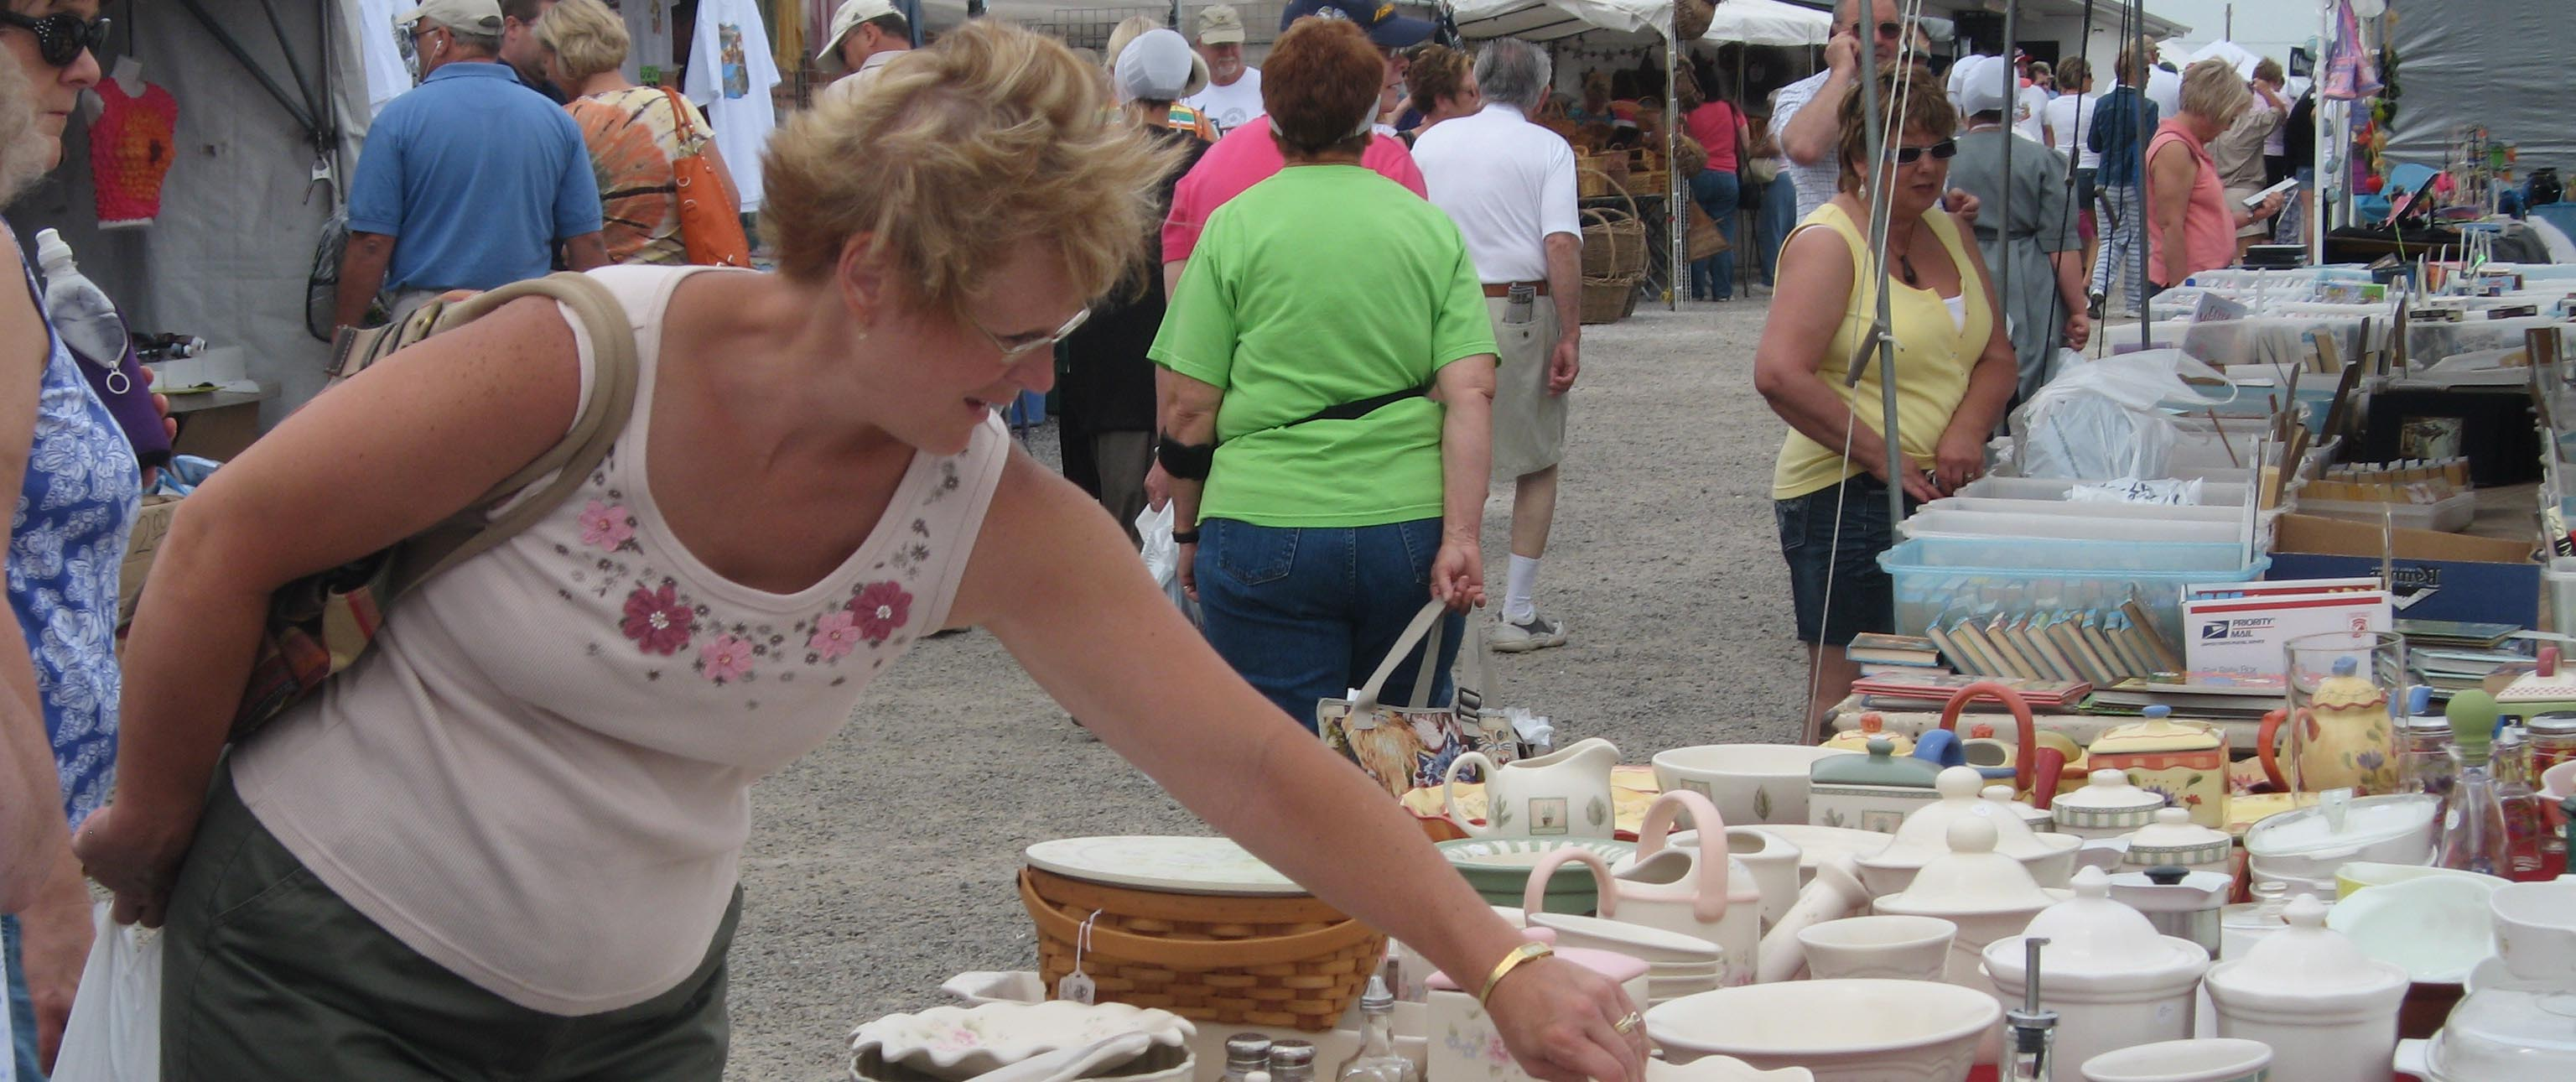 Lady looking at dishes at the Shipshewana Flea Market